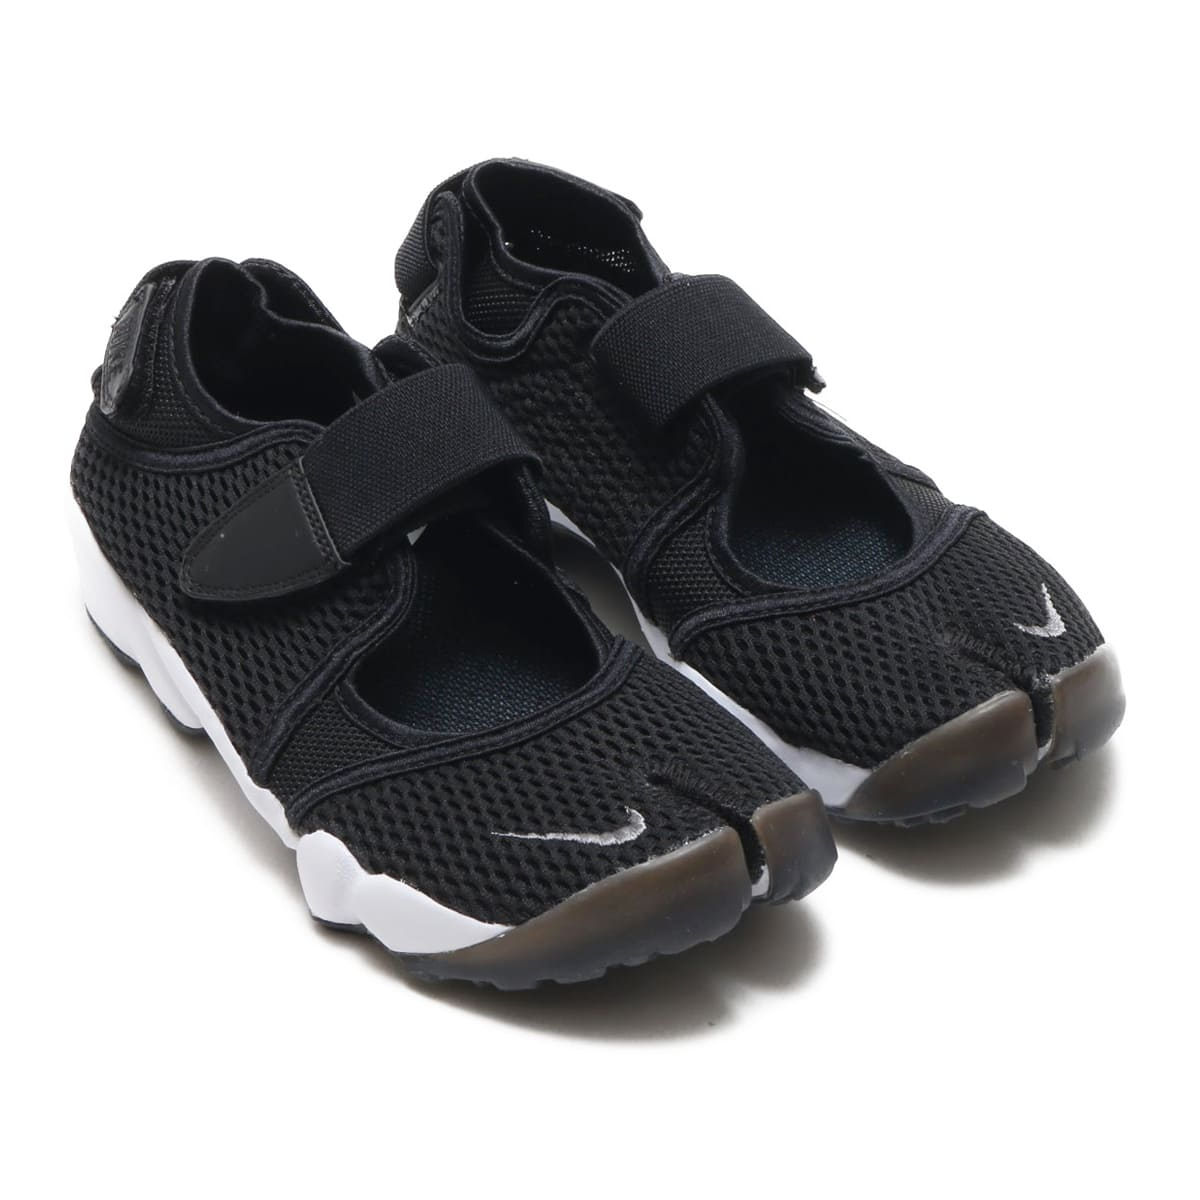 NIKE WMNS AIR RIFT BR BLACK/COOL GREY-WHITE 21SU-I_photo_large